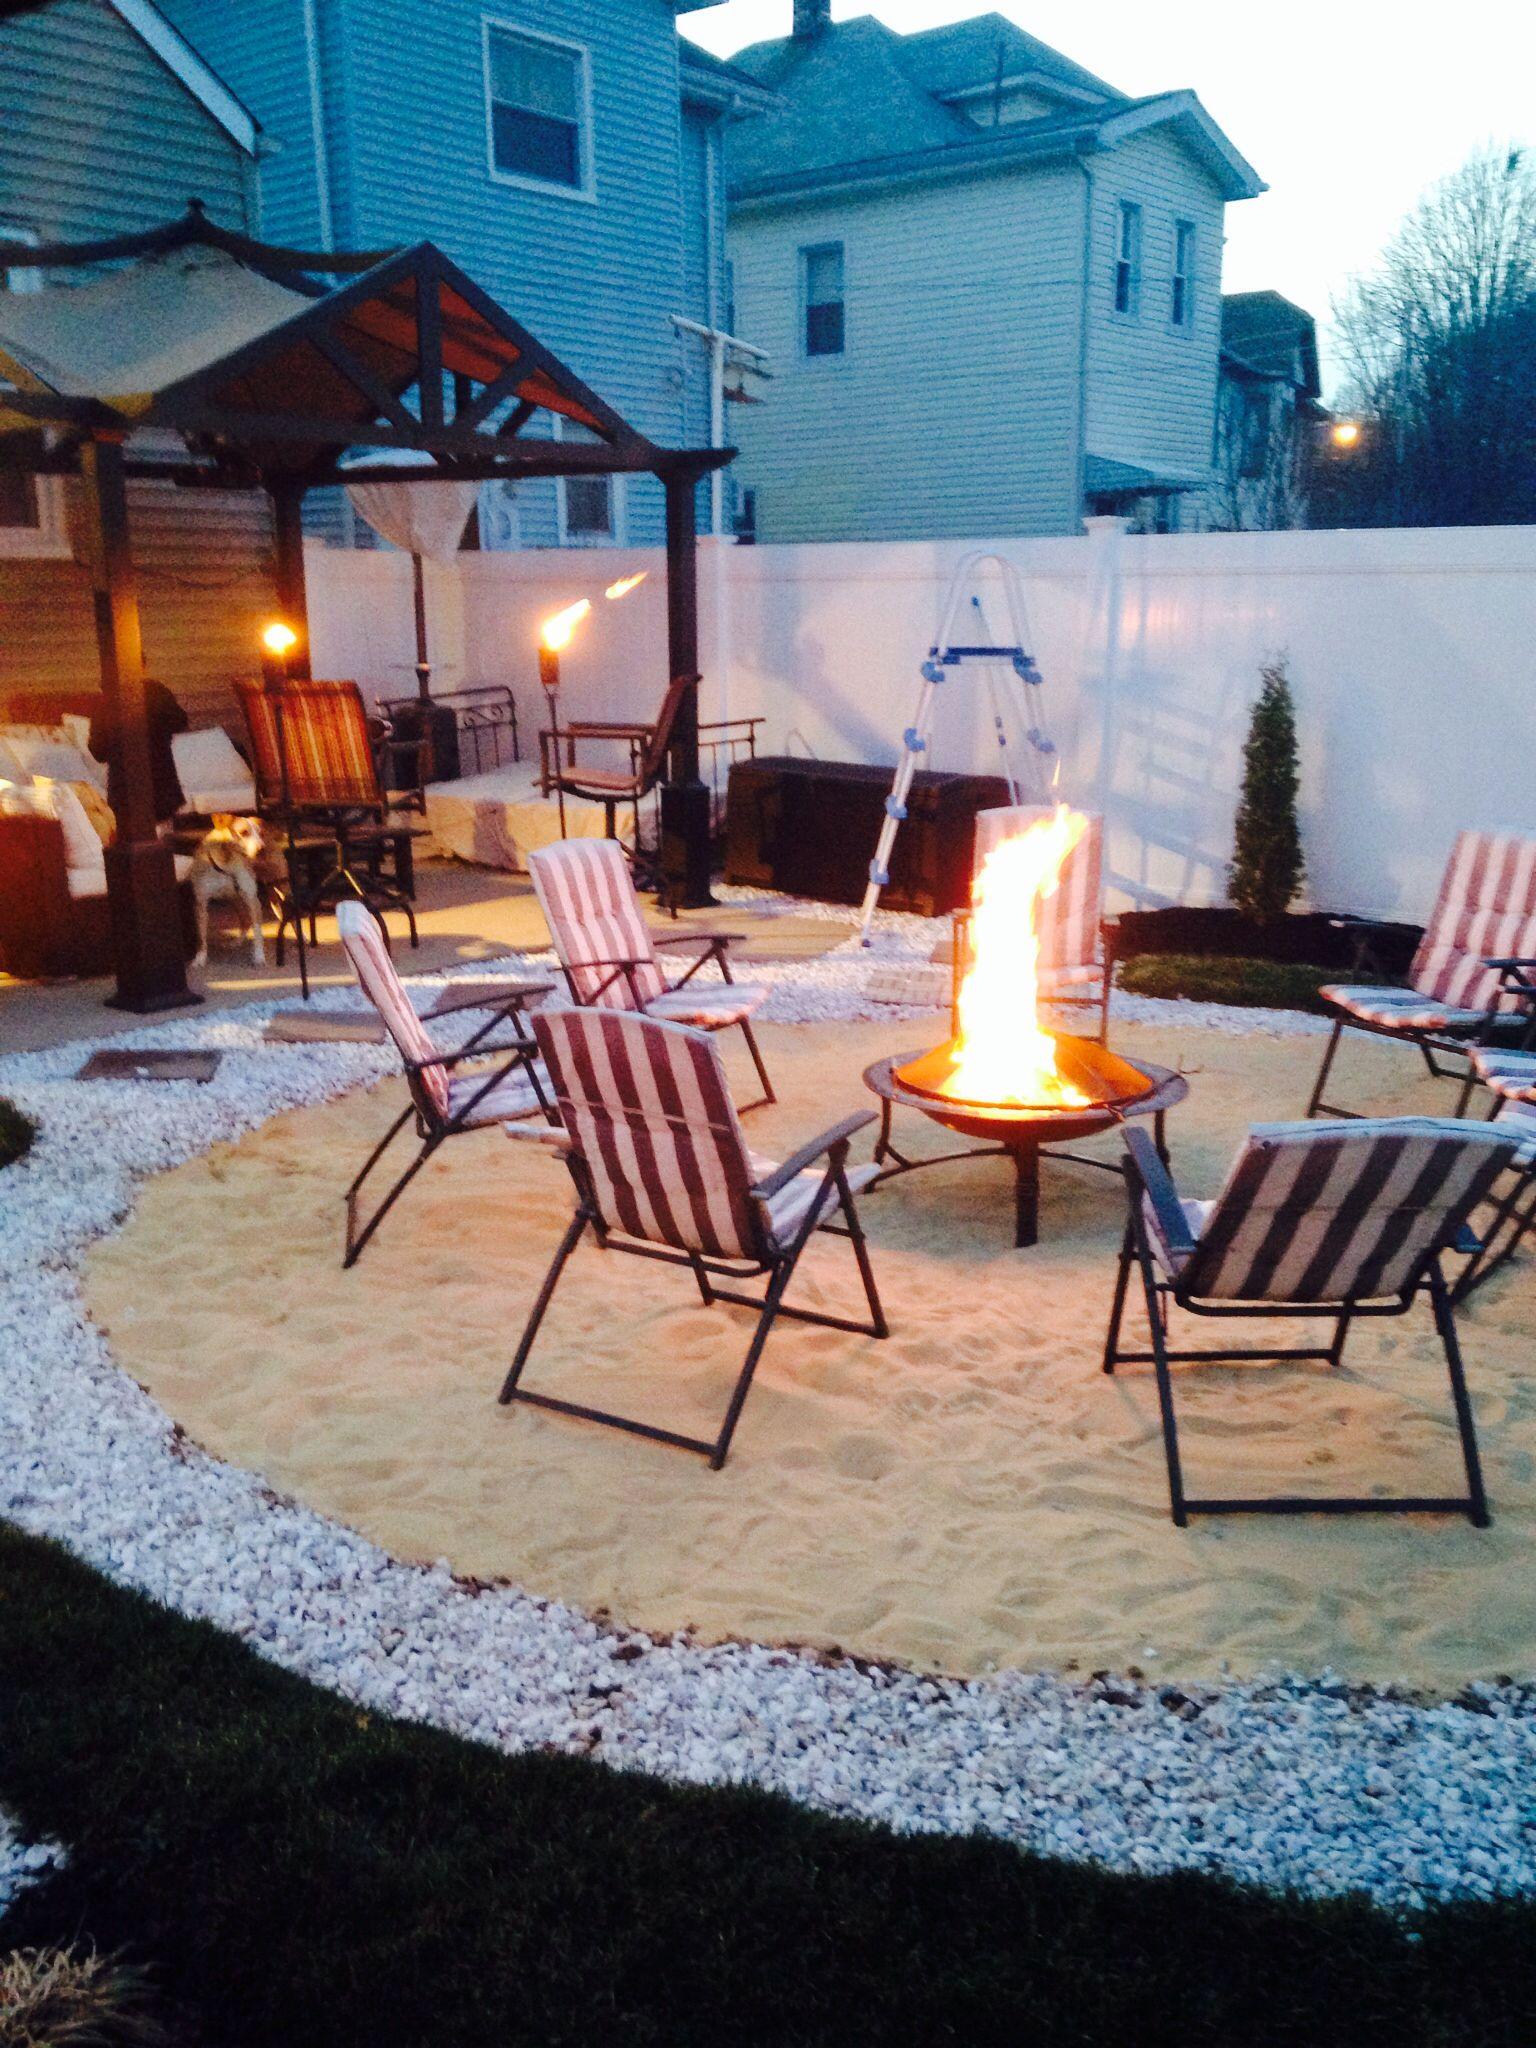 Fire pit sand pit in 2019 | Fire pit backyard, Fire pit ... Ideas For Backyards With Fire Pit Sand on outdoor furniture with fire pits, decks with fire pits, outdoor kitchen with fire pits, unique patio fire pits, swimming pools with fire pits, backyard patio with fire pits, gas fire pits, retaining walls with fire pits, water features with fire pits, gardens with fire pits,